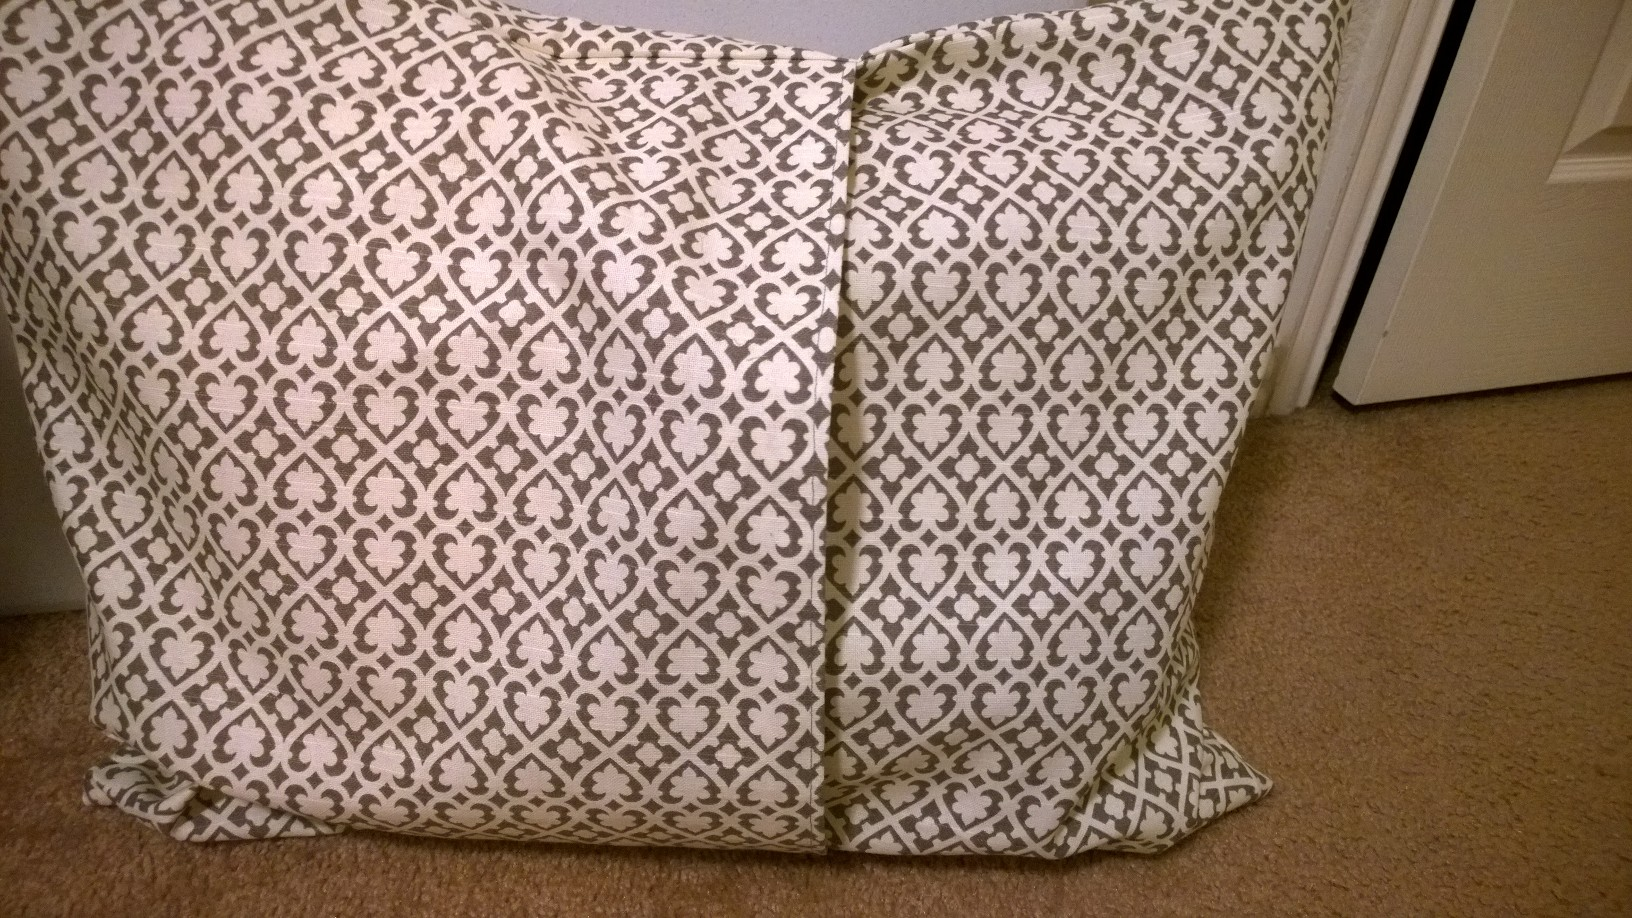 Back of one of the pillows, so you can don't see the pillow inserted